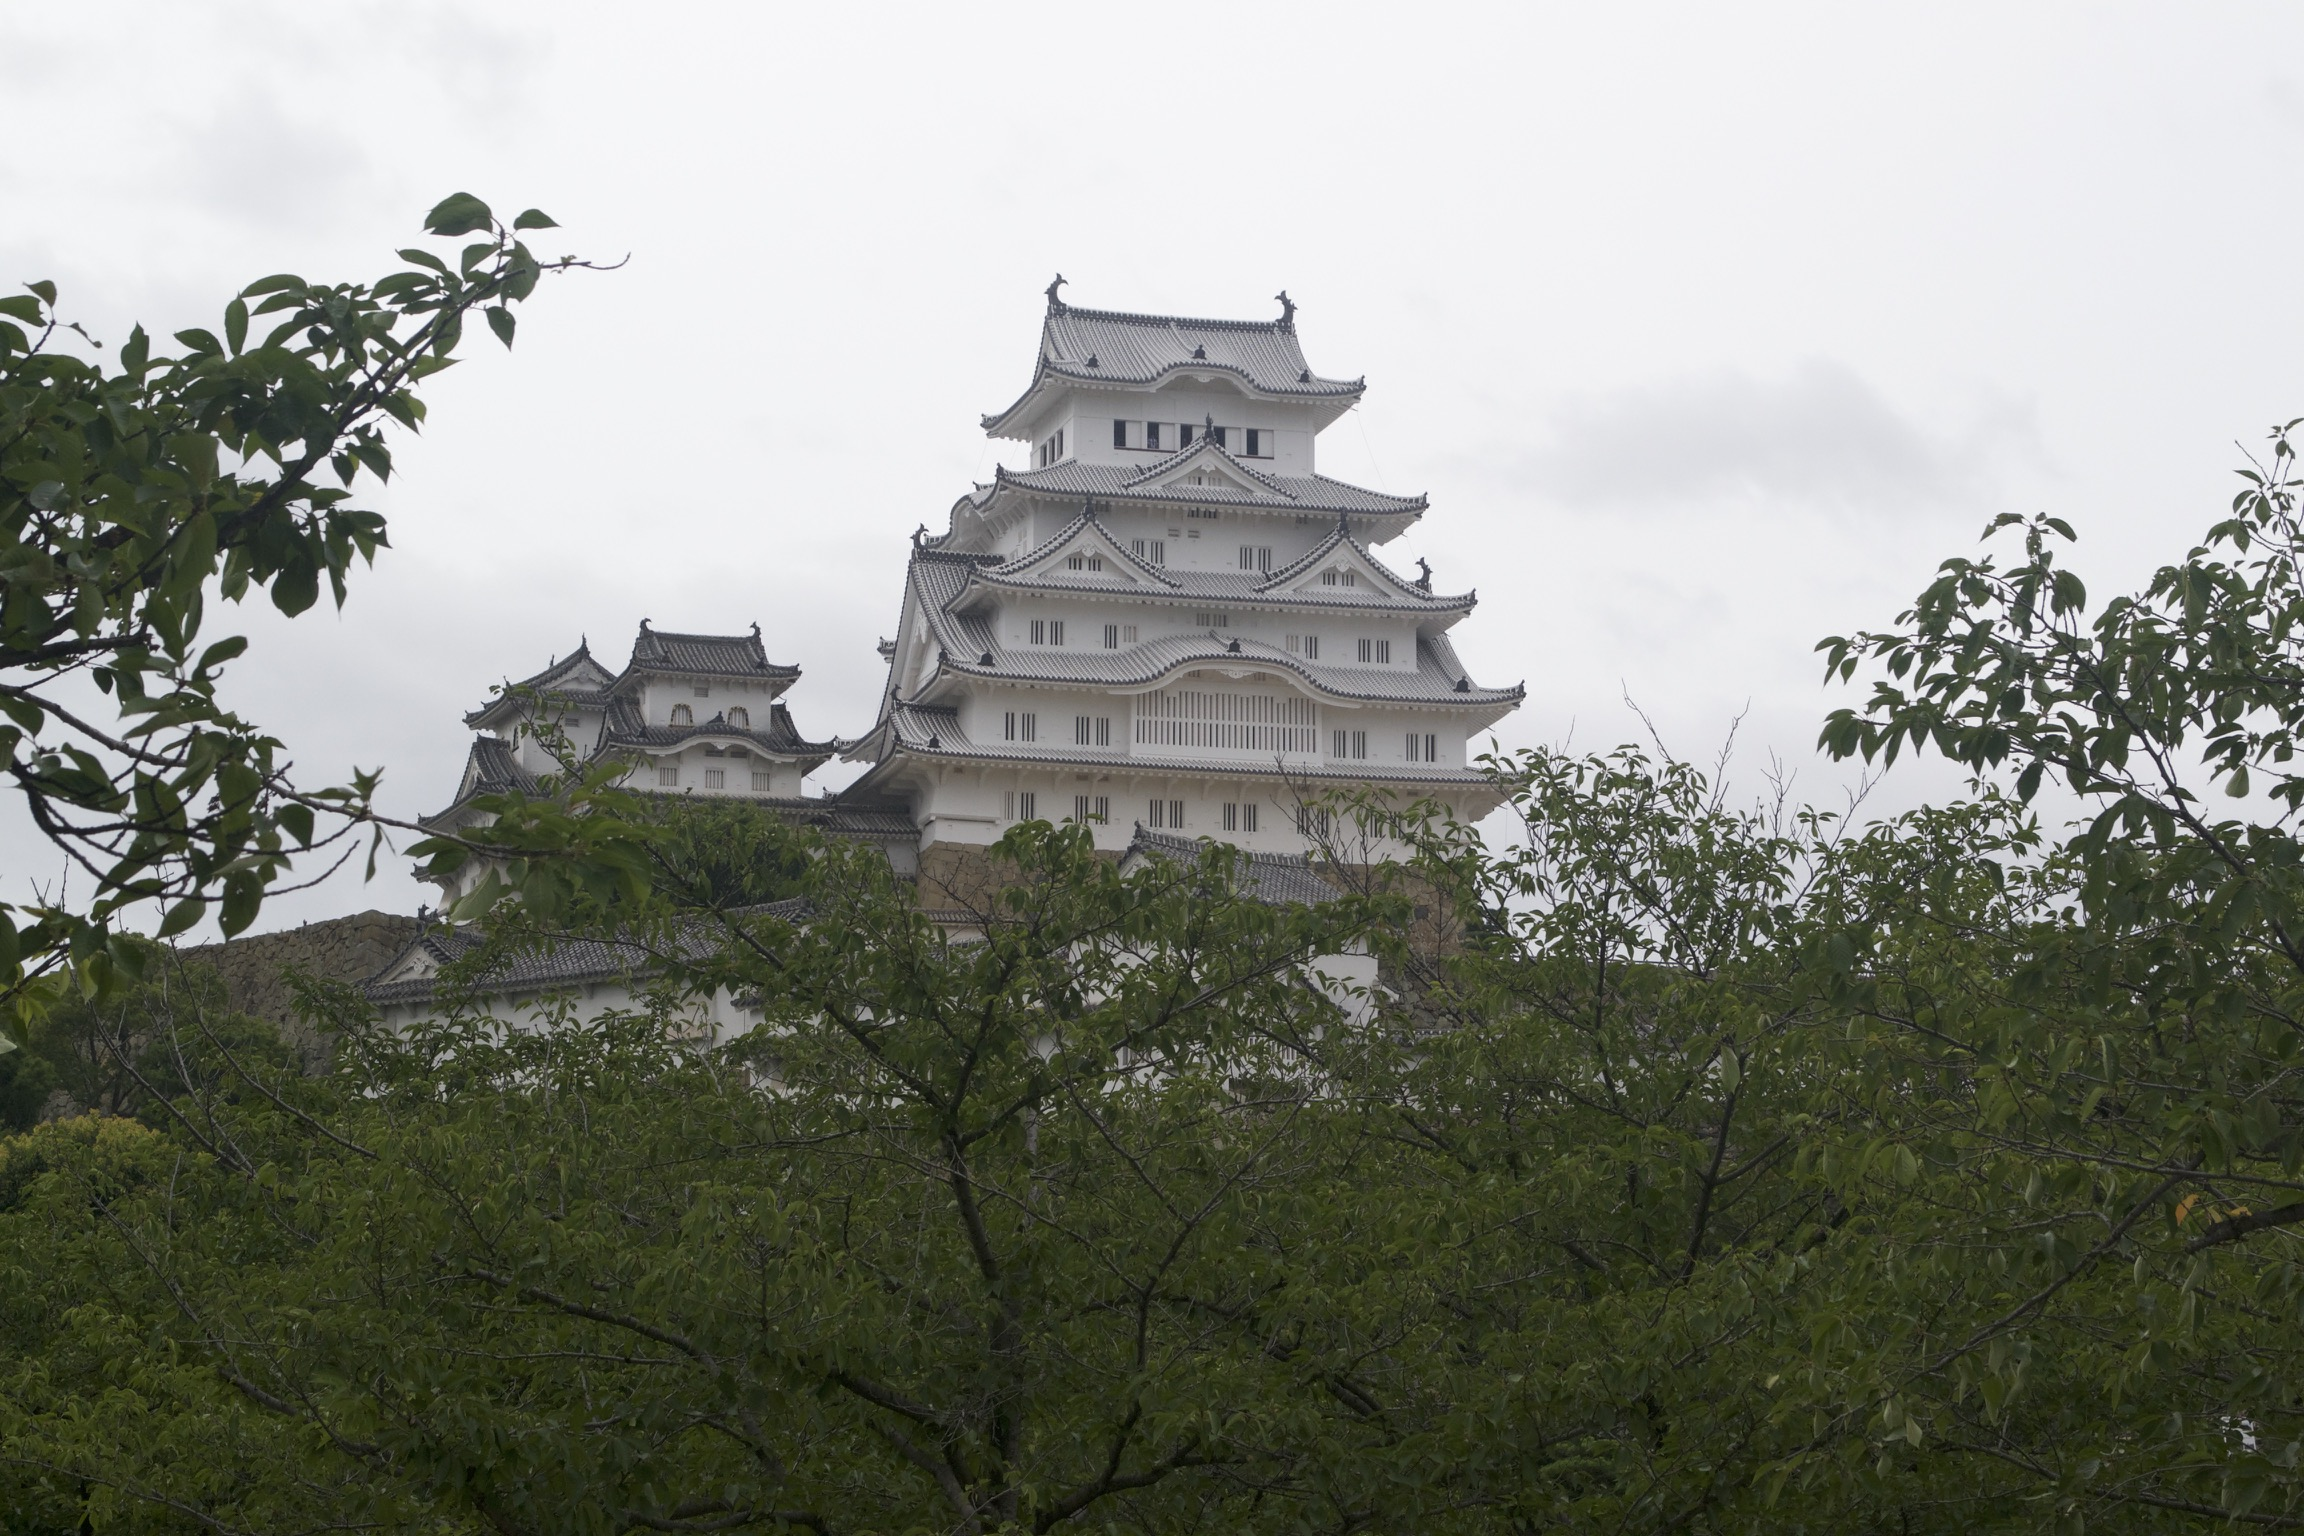 A black and white tiered castle stands against a gray sky.